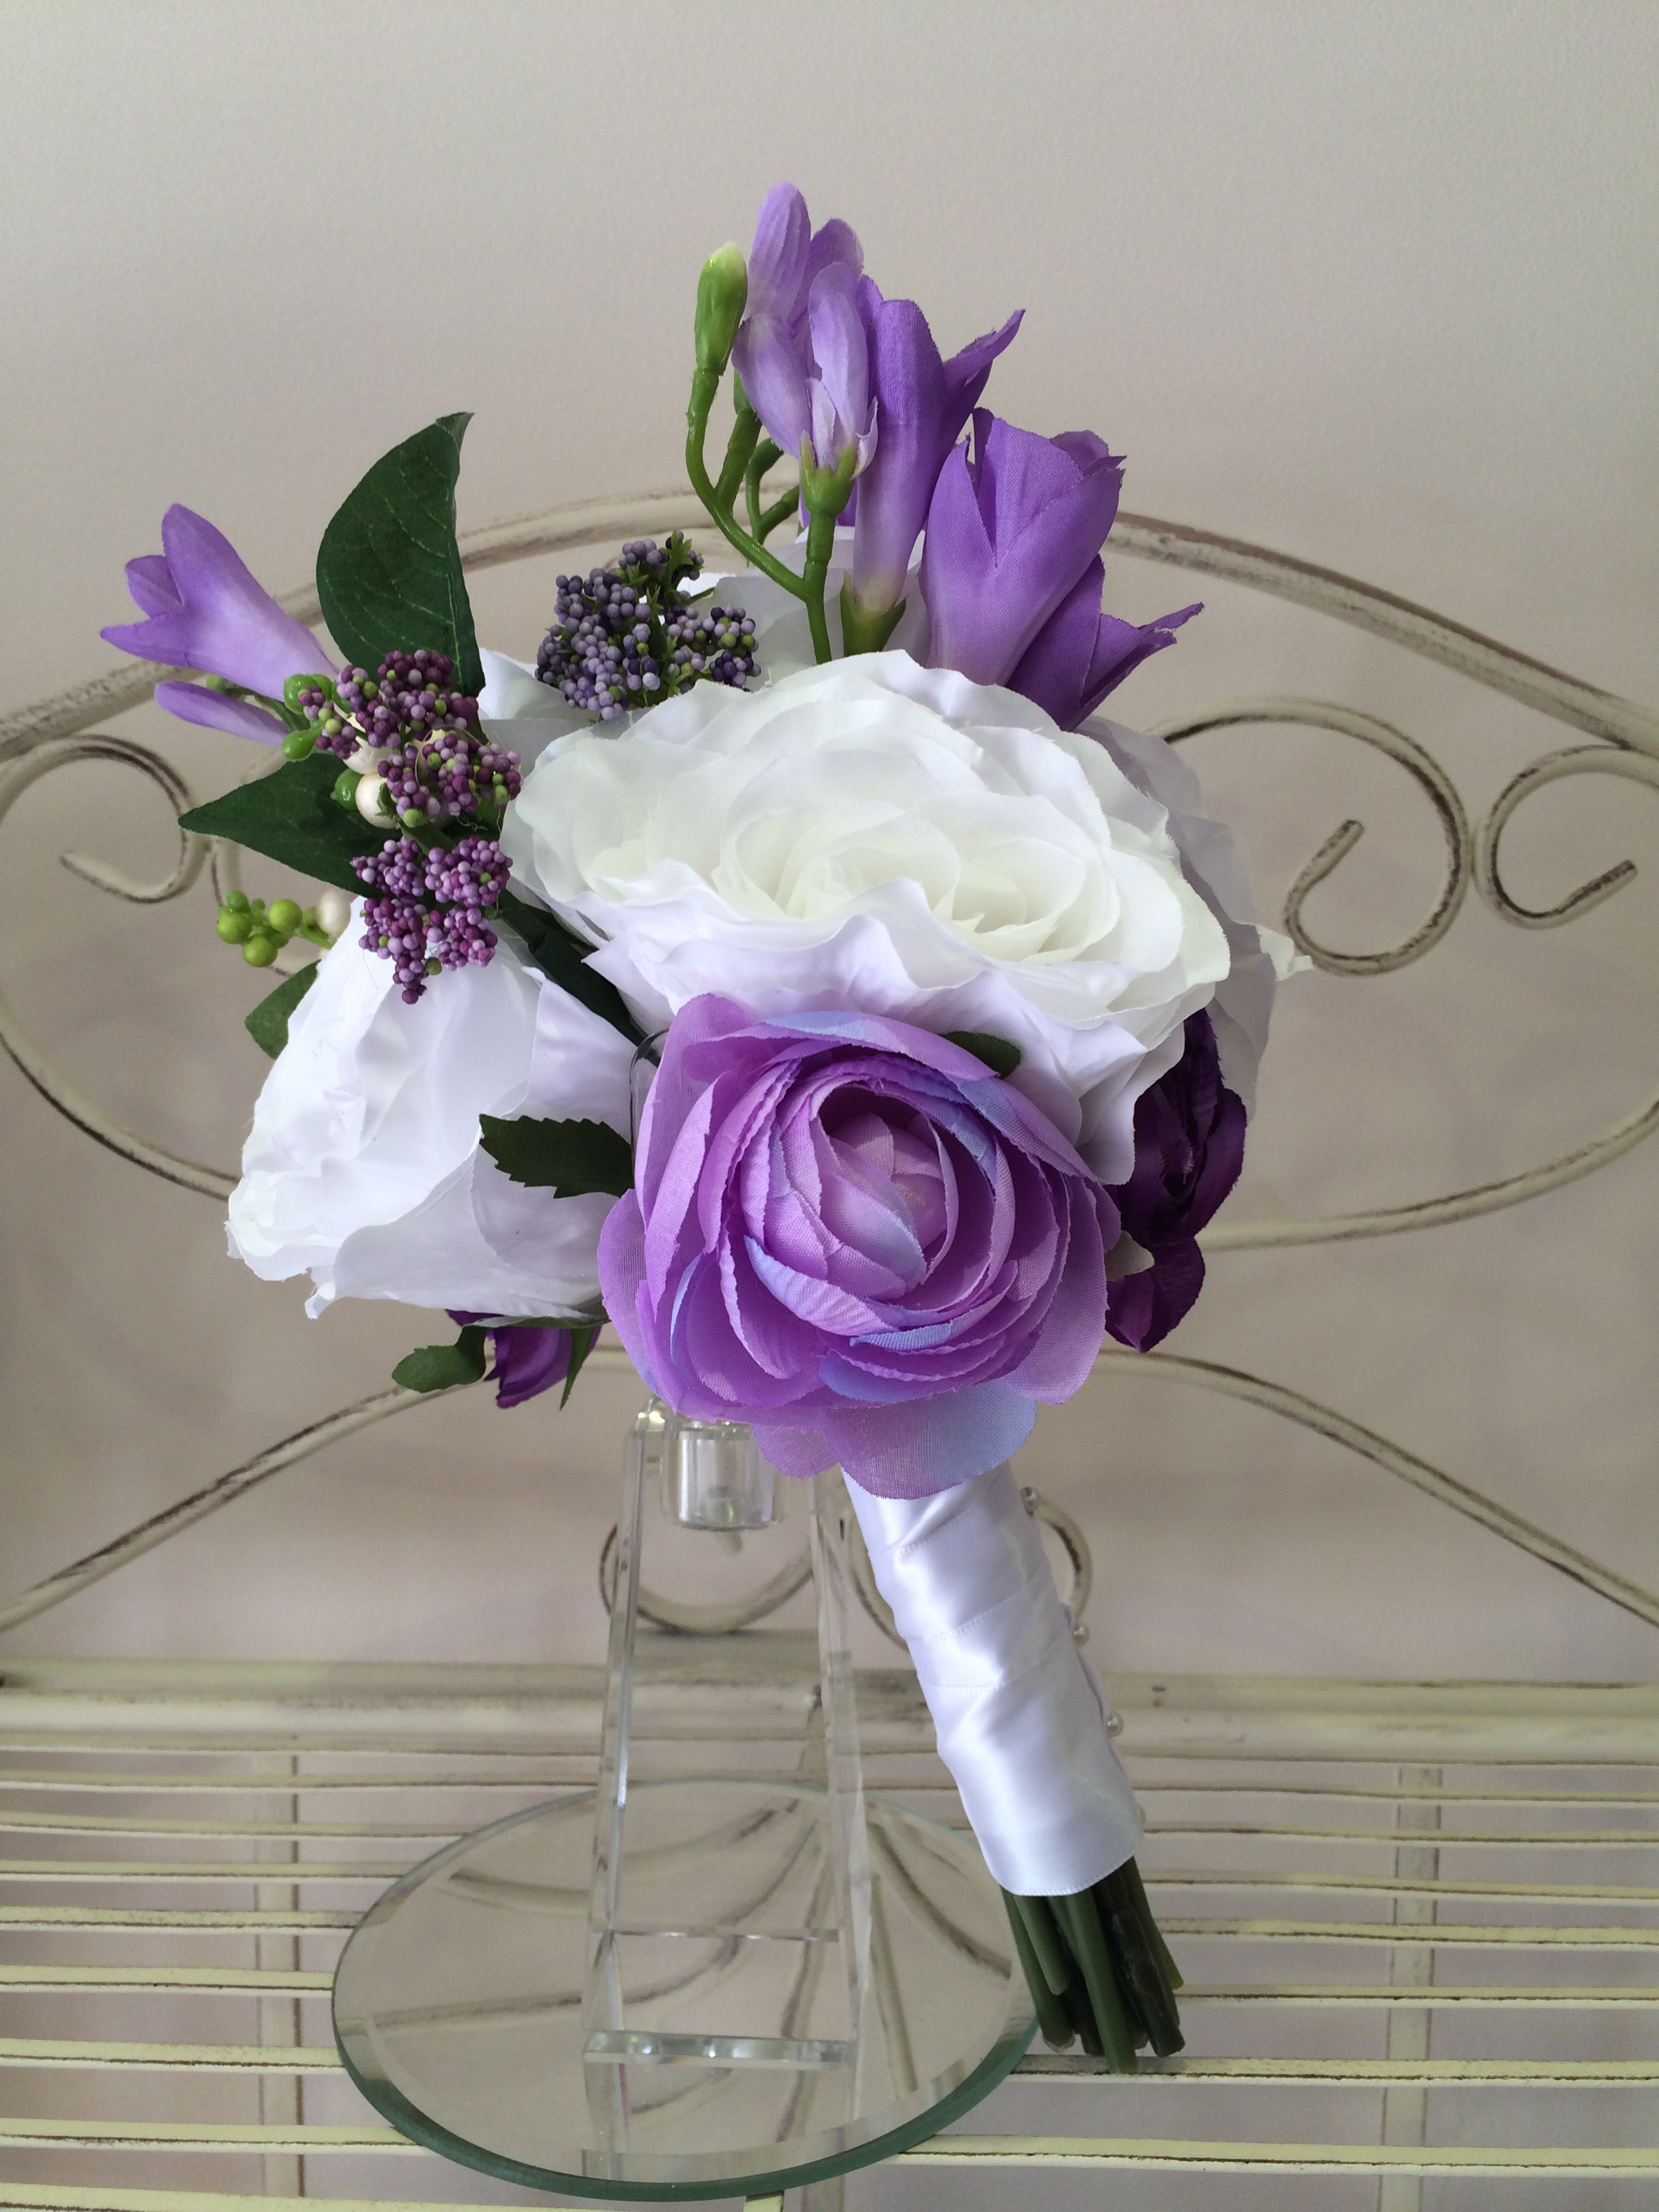 Bridesmaids Bouquet With White Roses, Lilac             Ranunculus & Lilac Hedgerow Berries